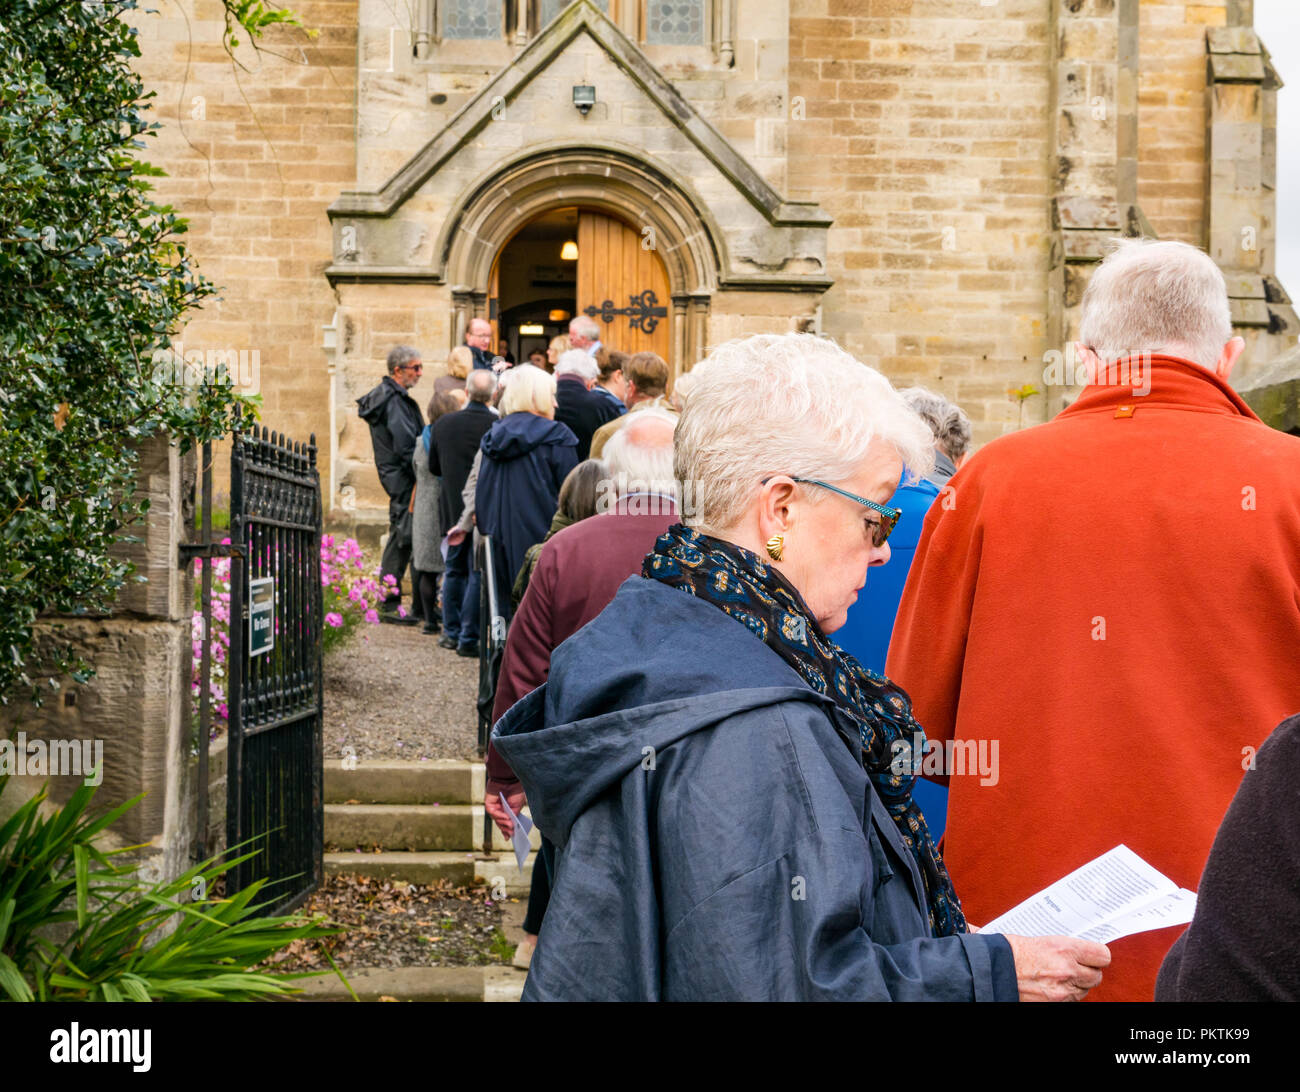 Gladsmuir Parish Church, Gladsmuir, East Lothian, Scotland, UK, 15th September 2018. The concert series continues on its second day with Bach's Musical Offering  by Dunedin Consort at the Lammermuir Festival in Gladsmuir. People queue to get into the concert and buy programmes Stock Photo